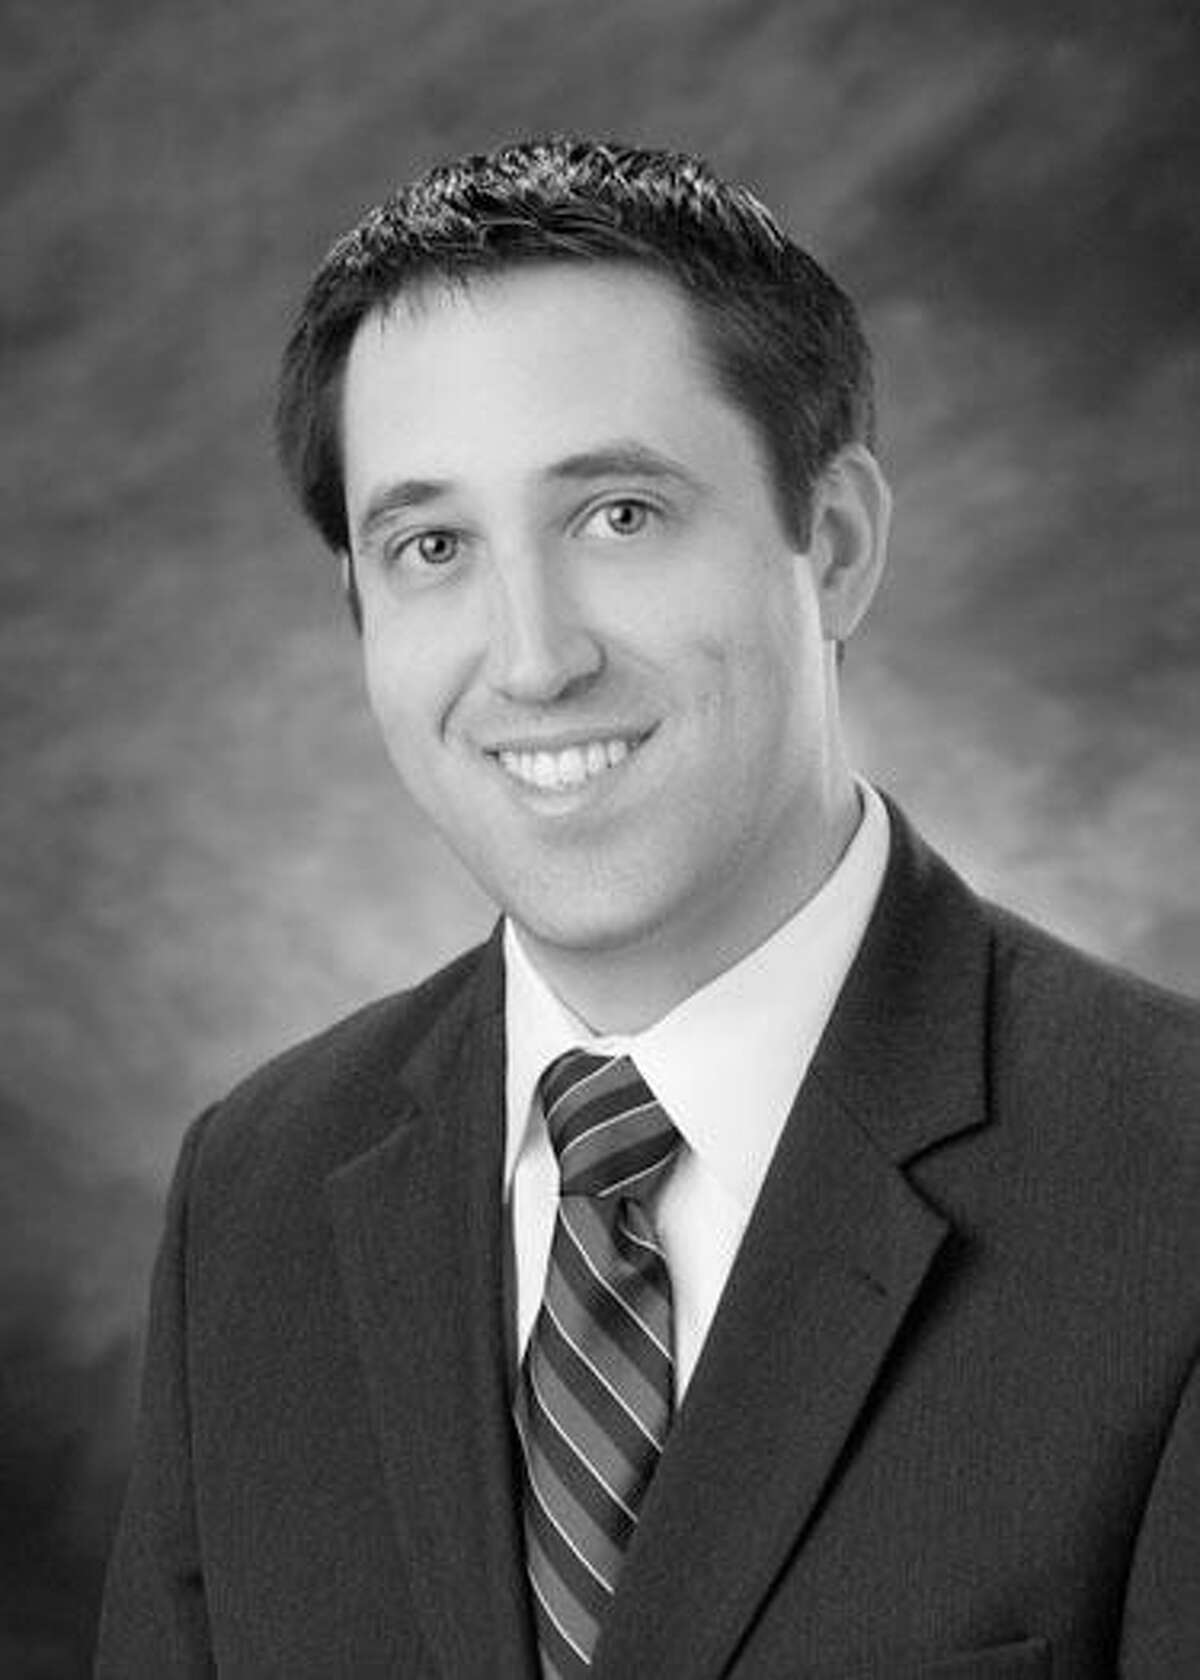 Glenn Hegar: A proposal to invest more of the rainy day fund was not intended to fix the state budget.